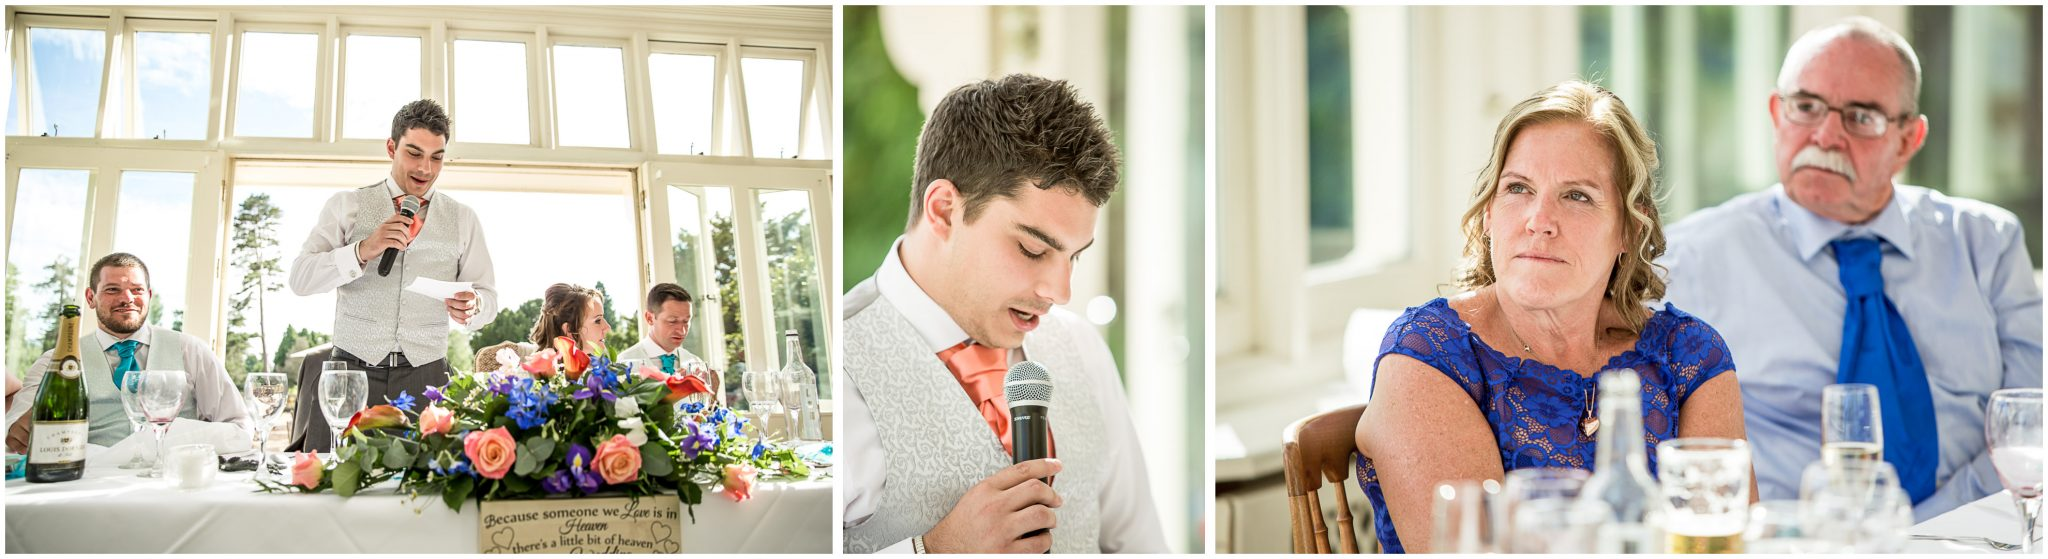 The groom gives his wedding speech in the conservatory at the Elvetham